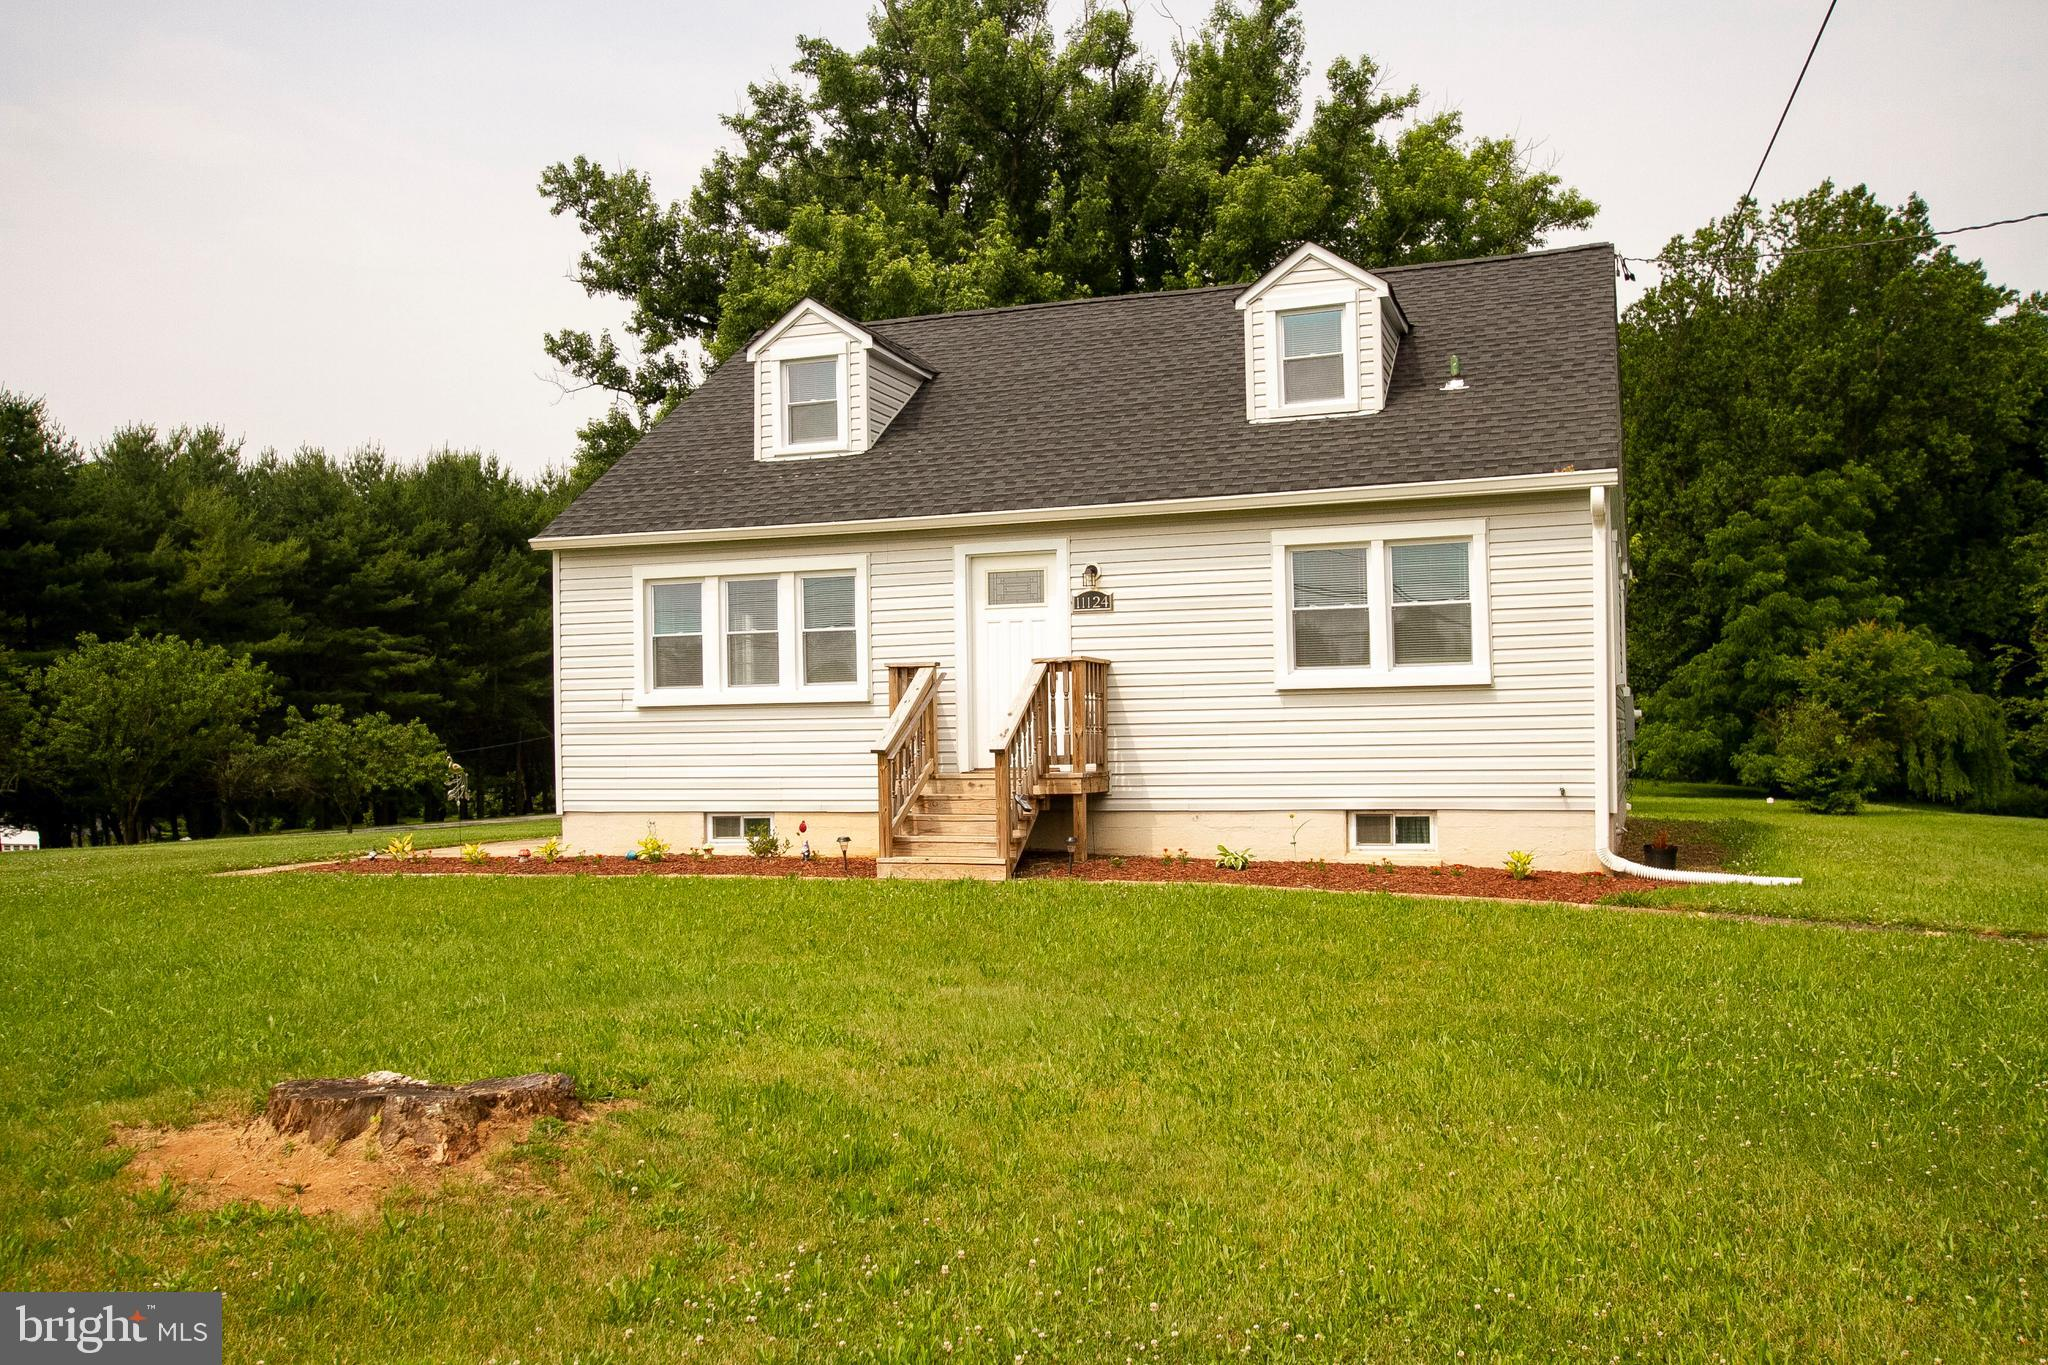 11124 RAPHEL ROAD, UPPER FALLS, MD 21156